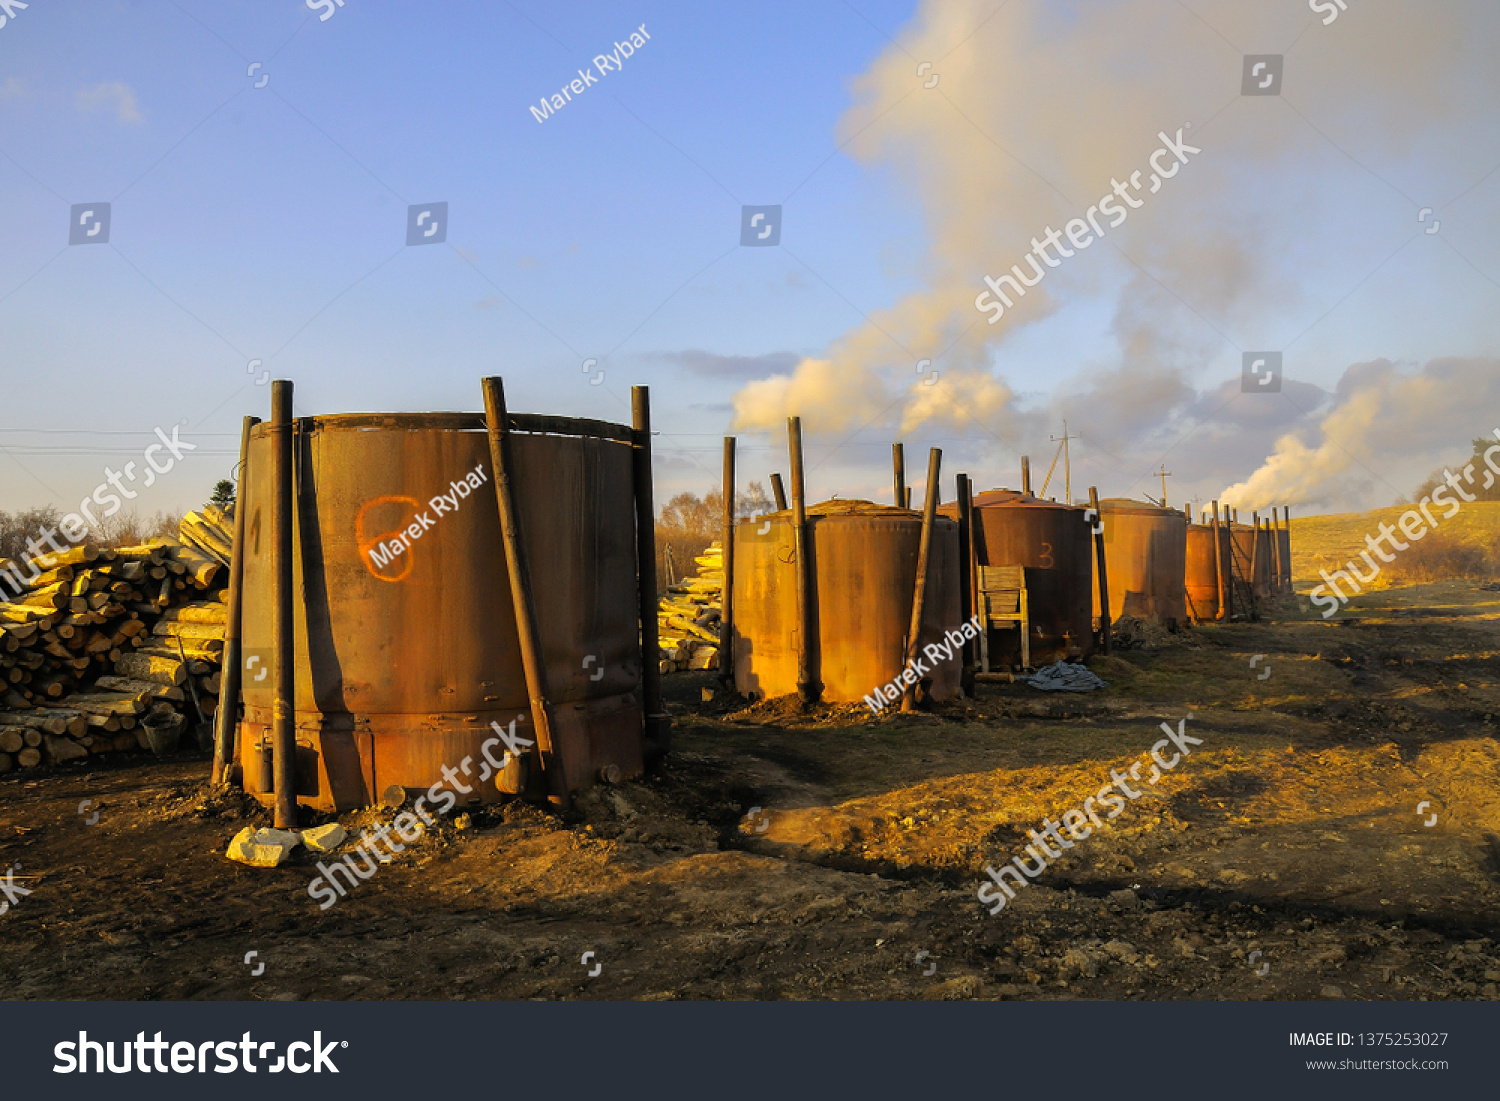 Several smoking charcoal kilns with burning wood. The Charcoal Kiln is a piece of equipment used to burn Wood into Coal. South Poland.